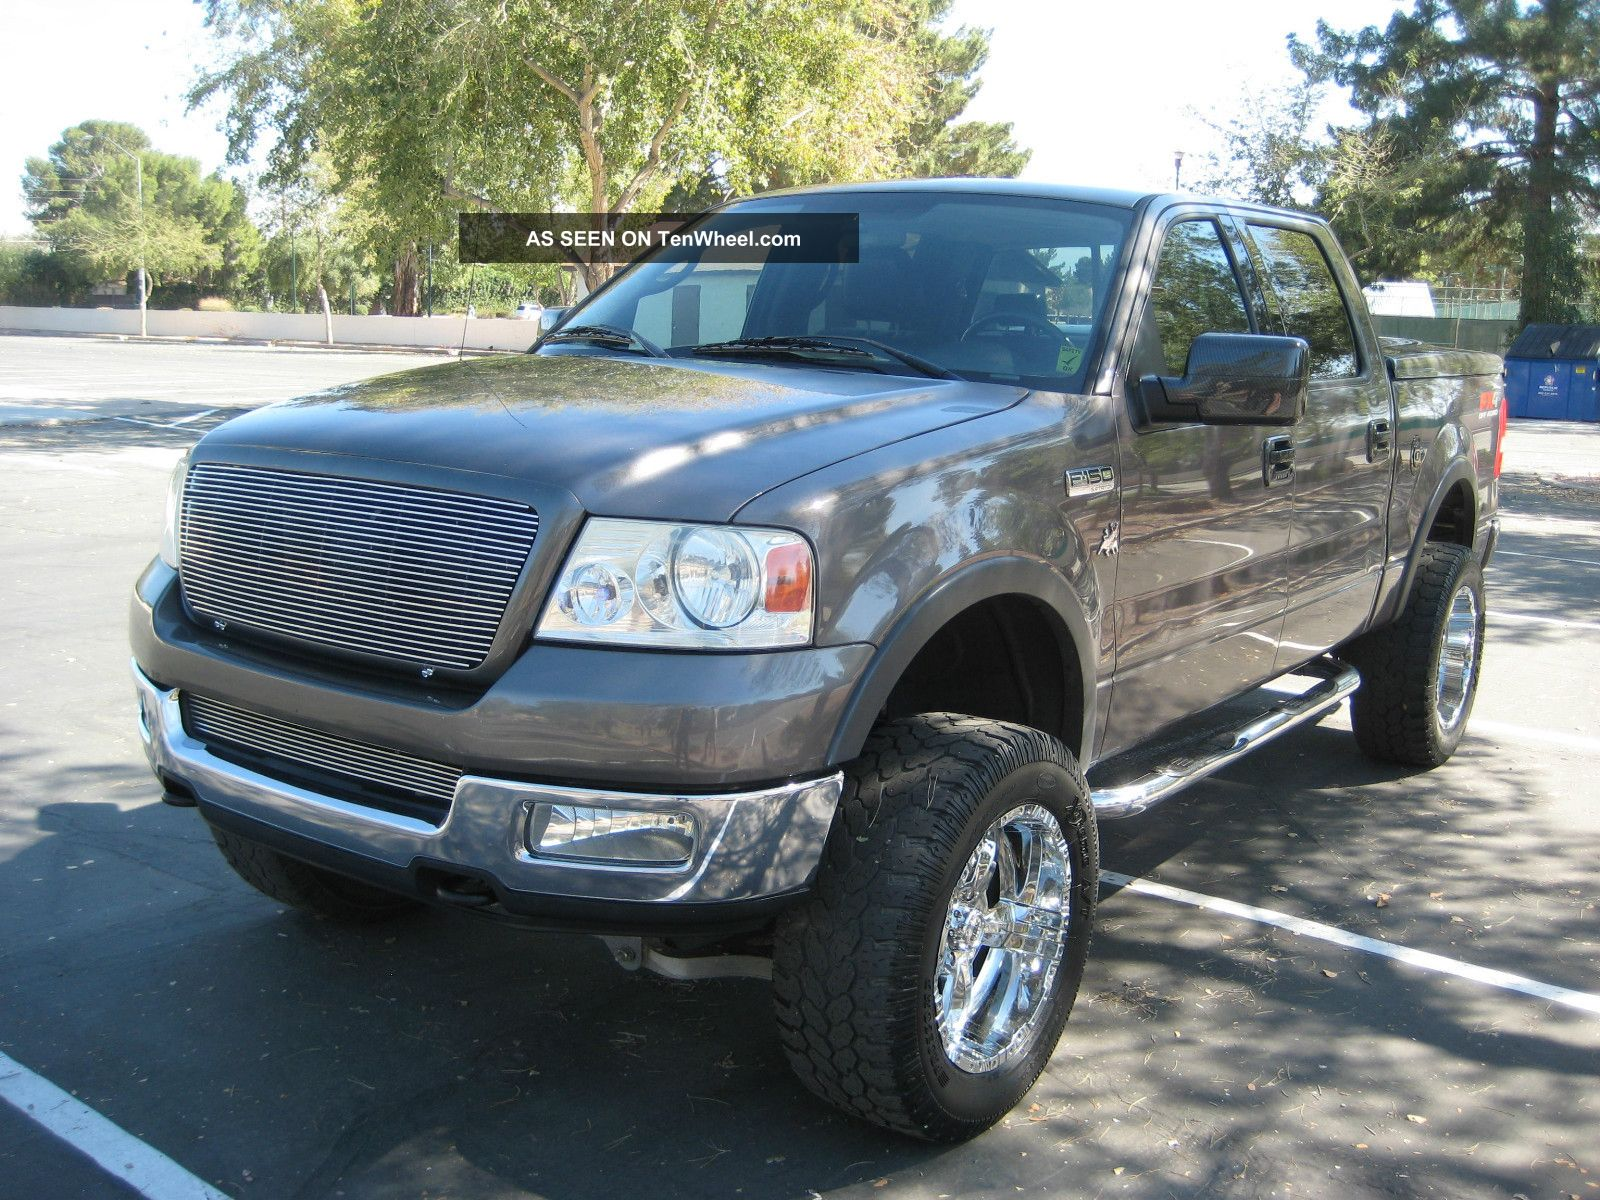 2004 silverado z71 4 door specs autos post. Black Bedroom Furniture Sets. Home Design Ideas